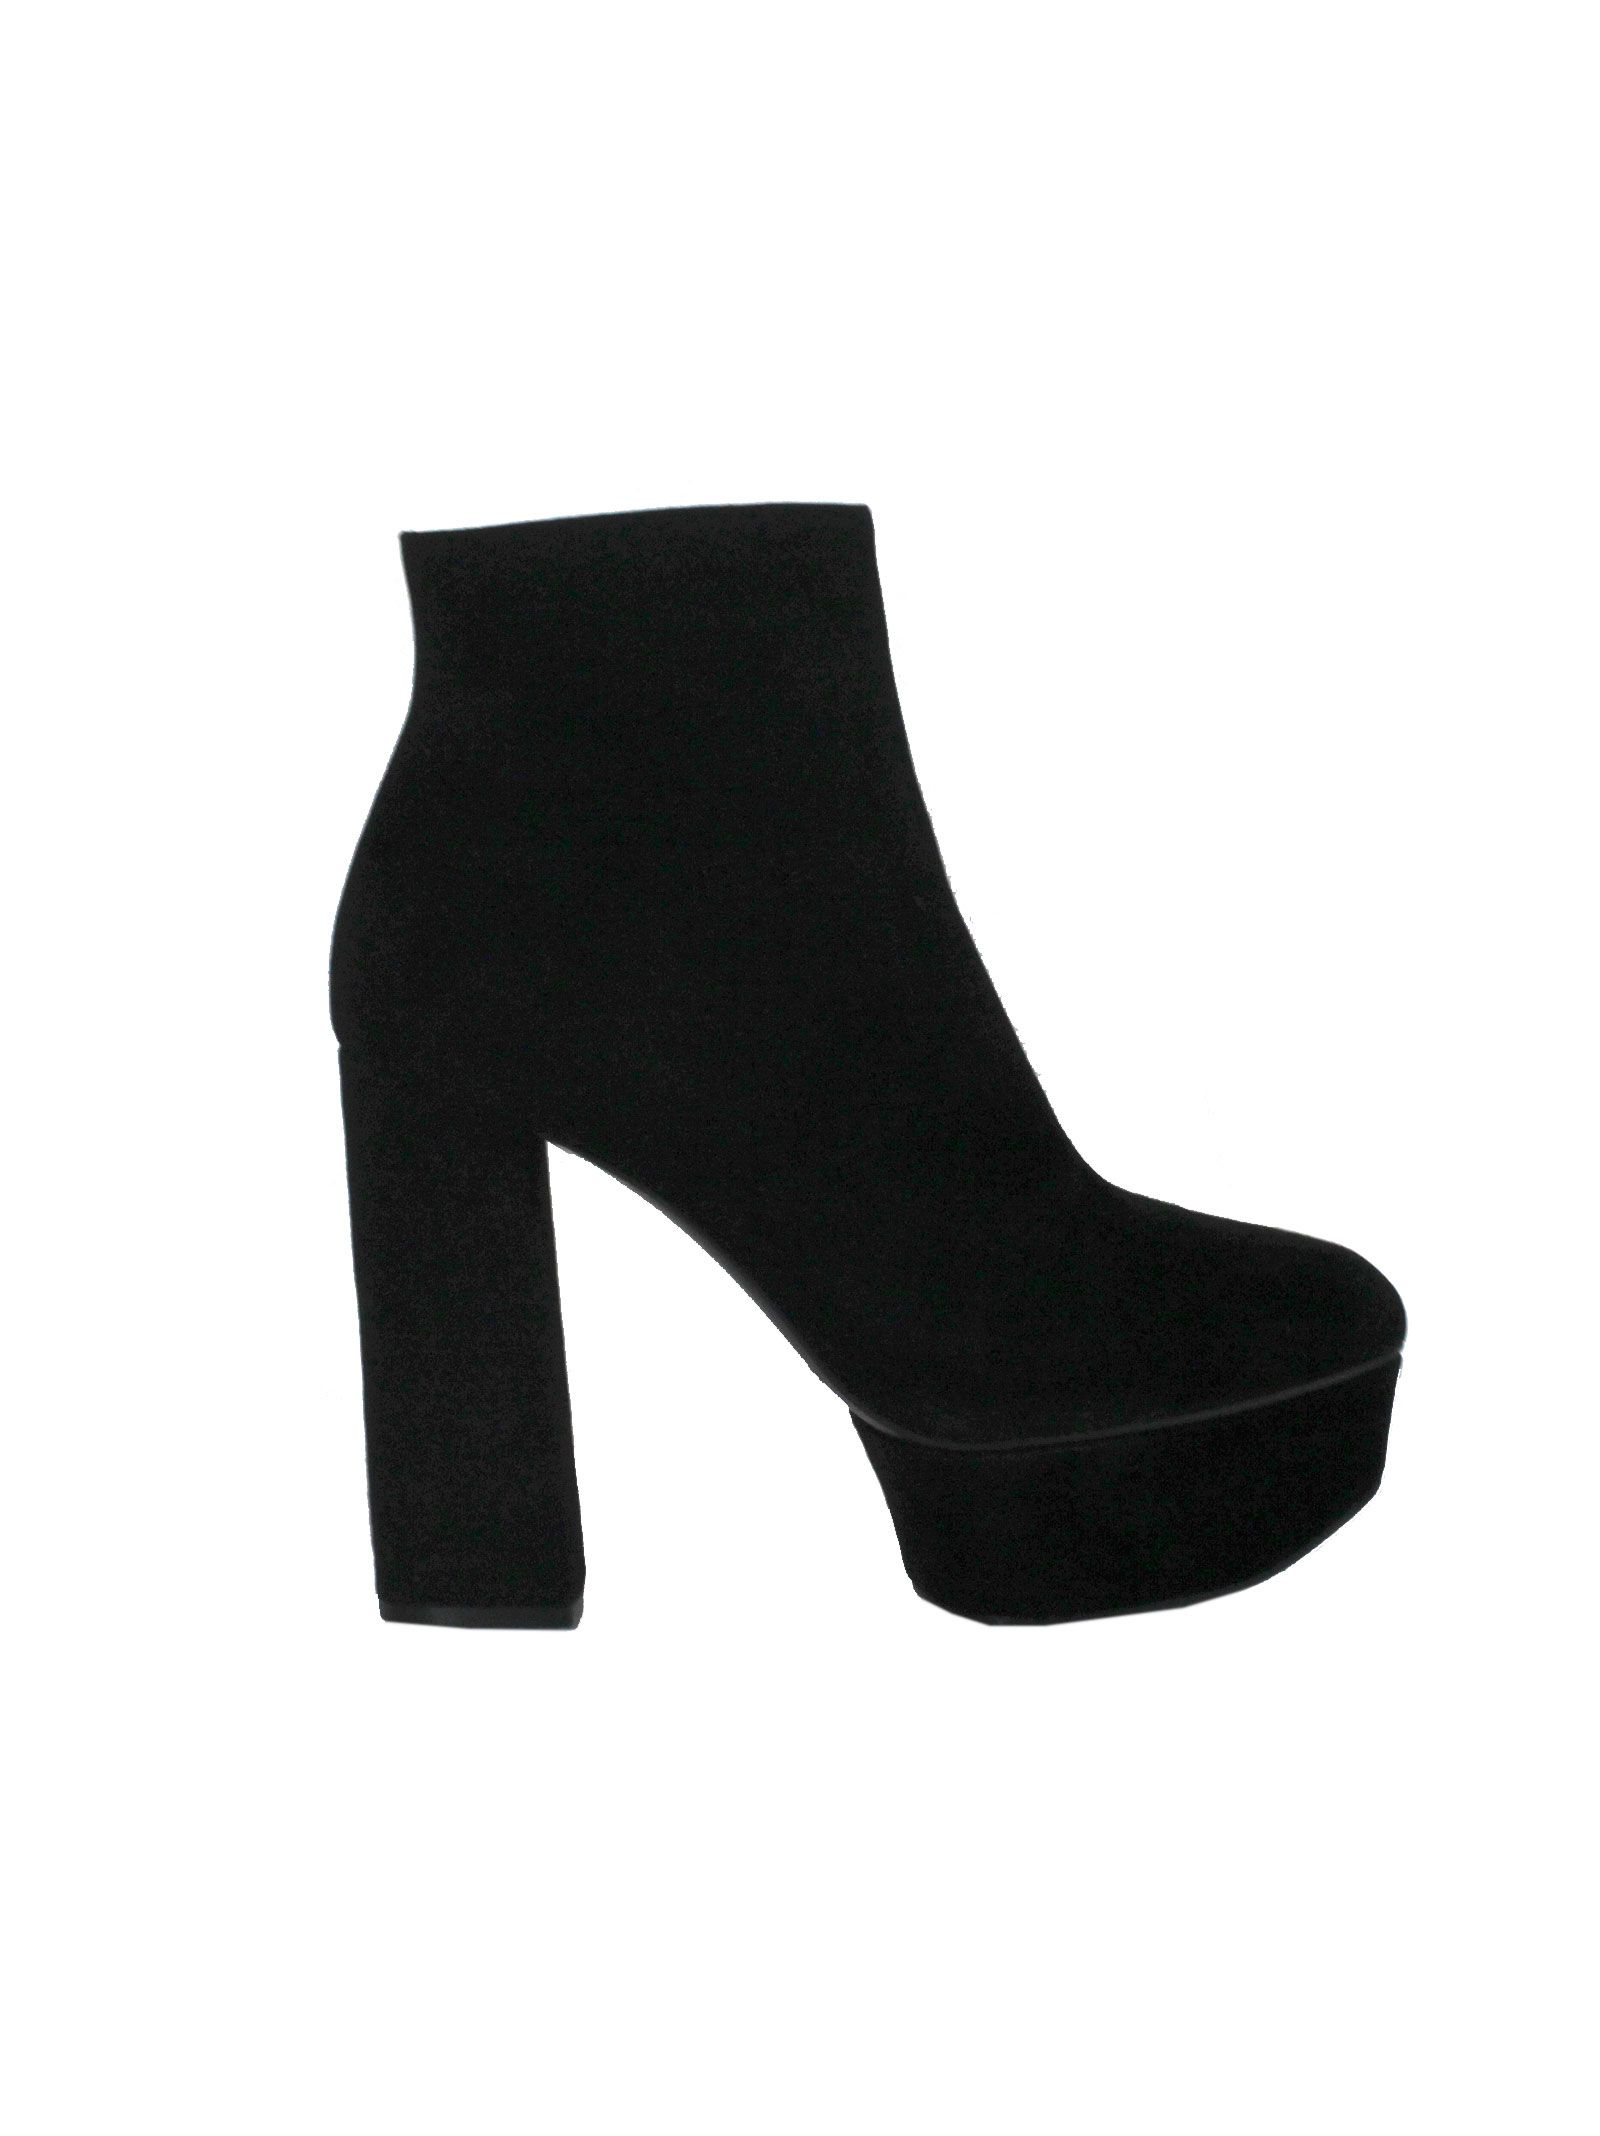 Black Suede Ankle Booties - Casadei - Circus